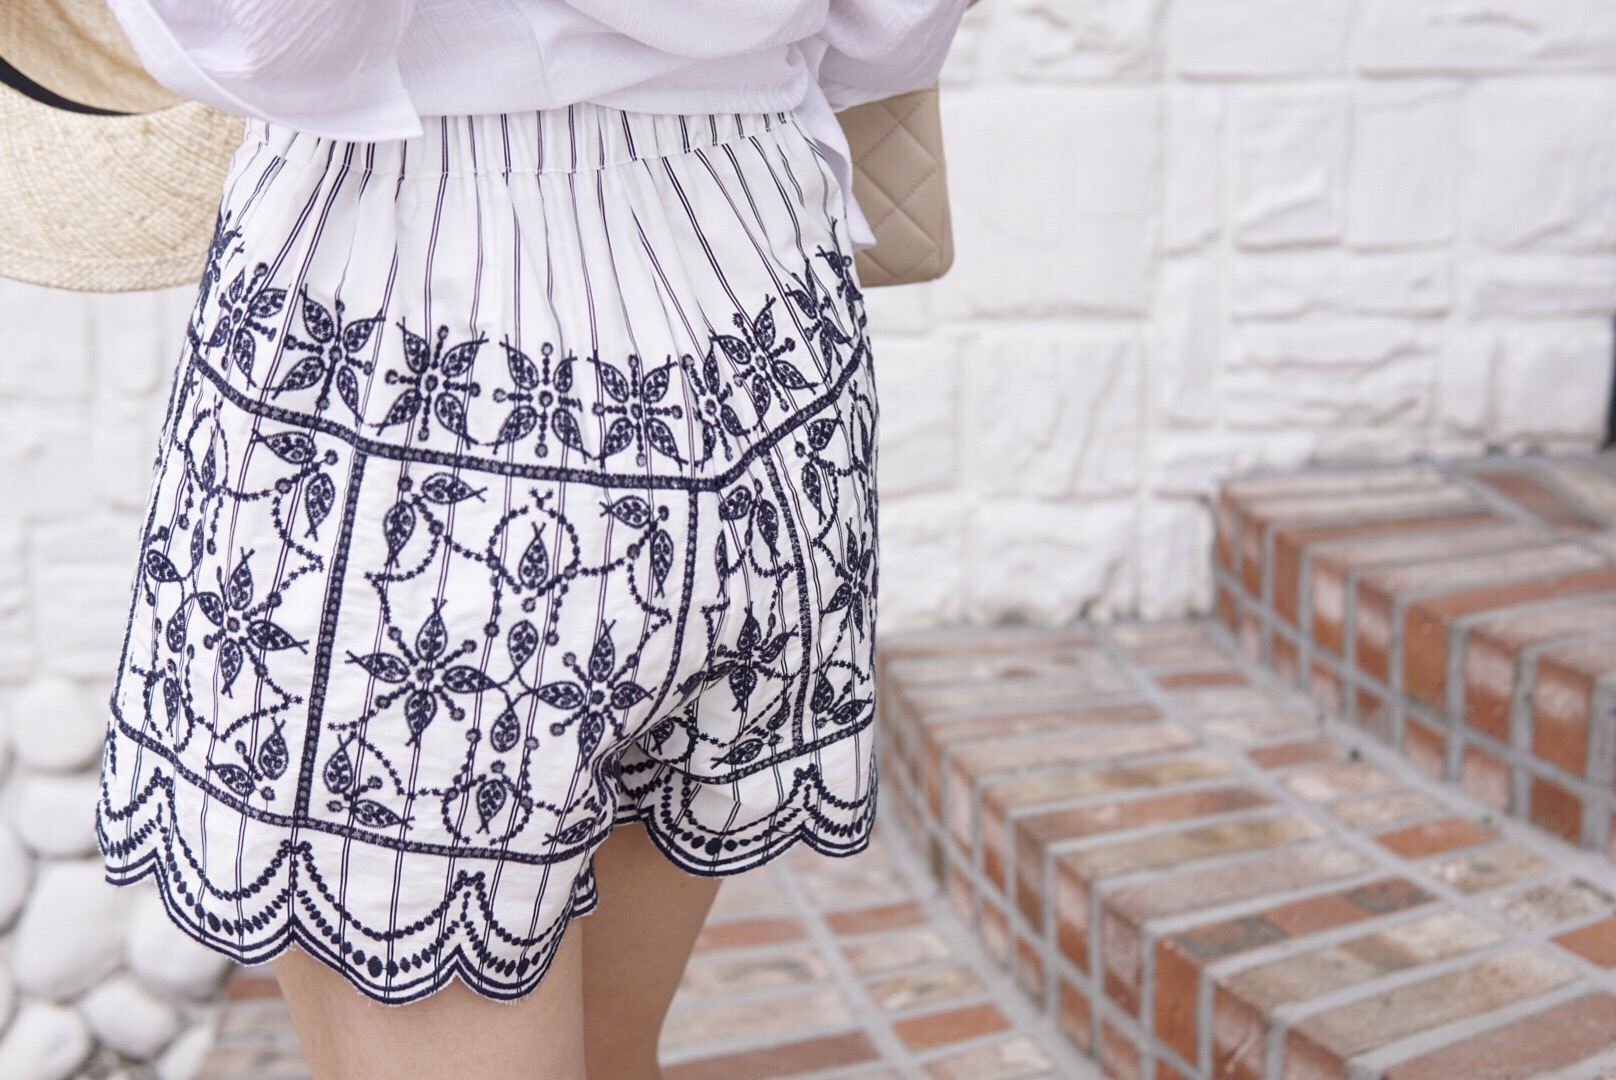 孕妇��.�yd�i)��,y�`�d%_the embroidery, shorts